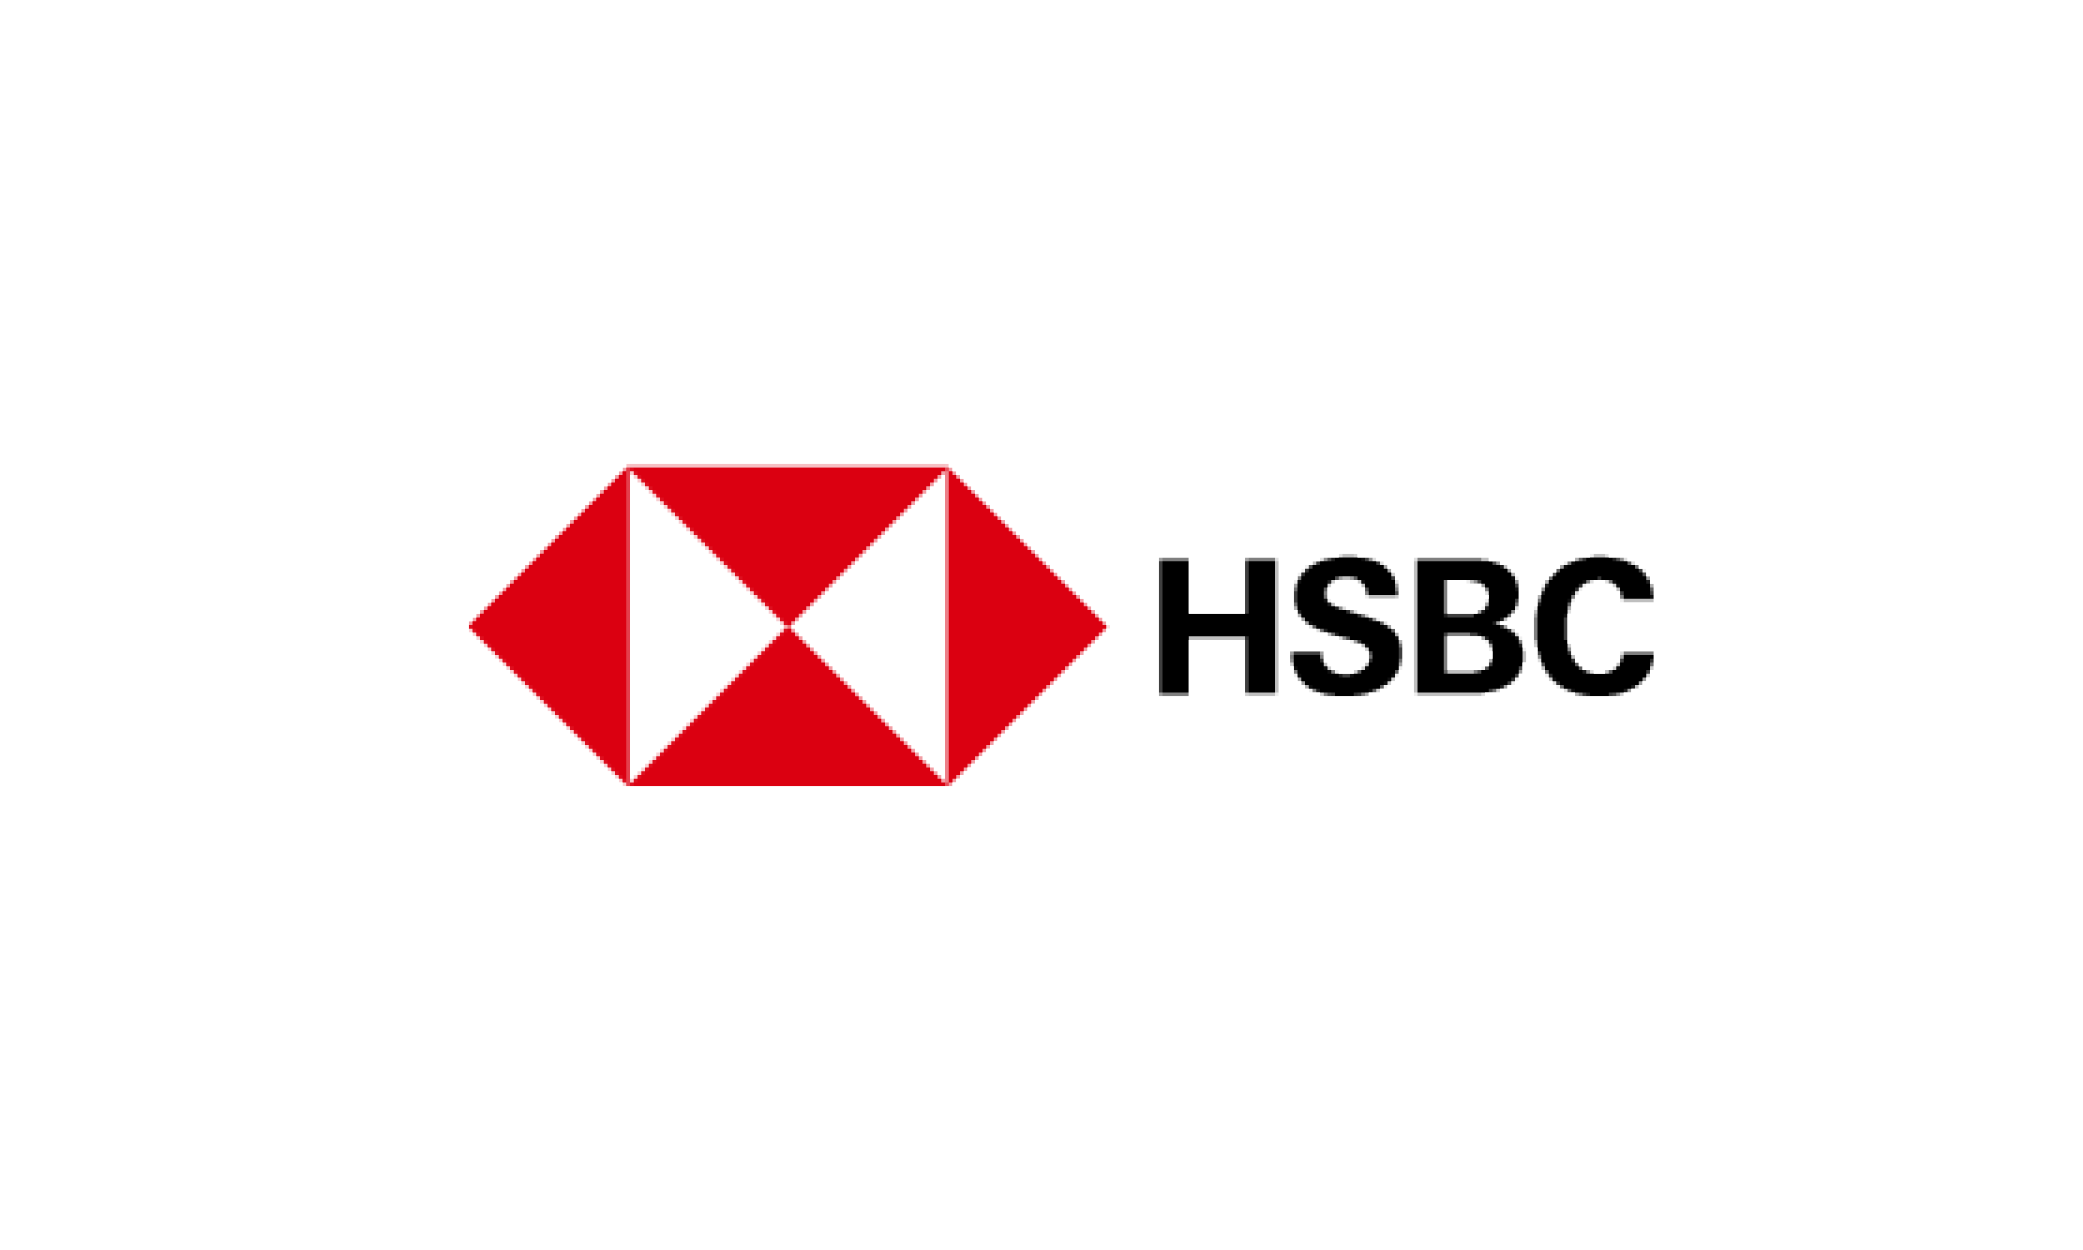 HSBC White bkgd.png